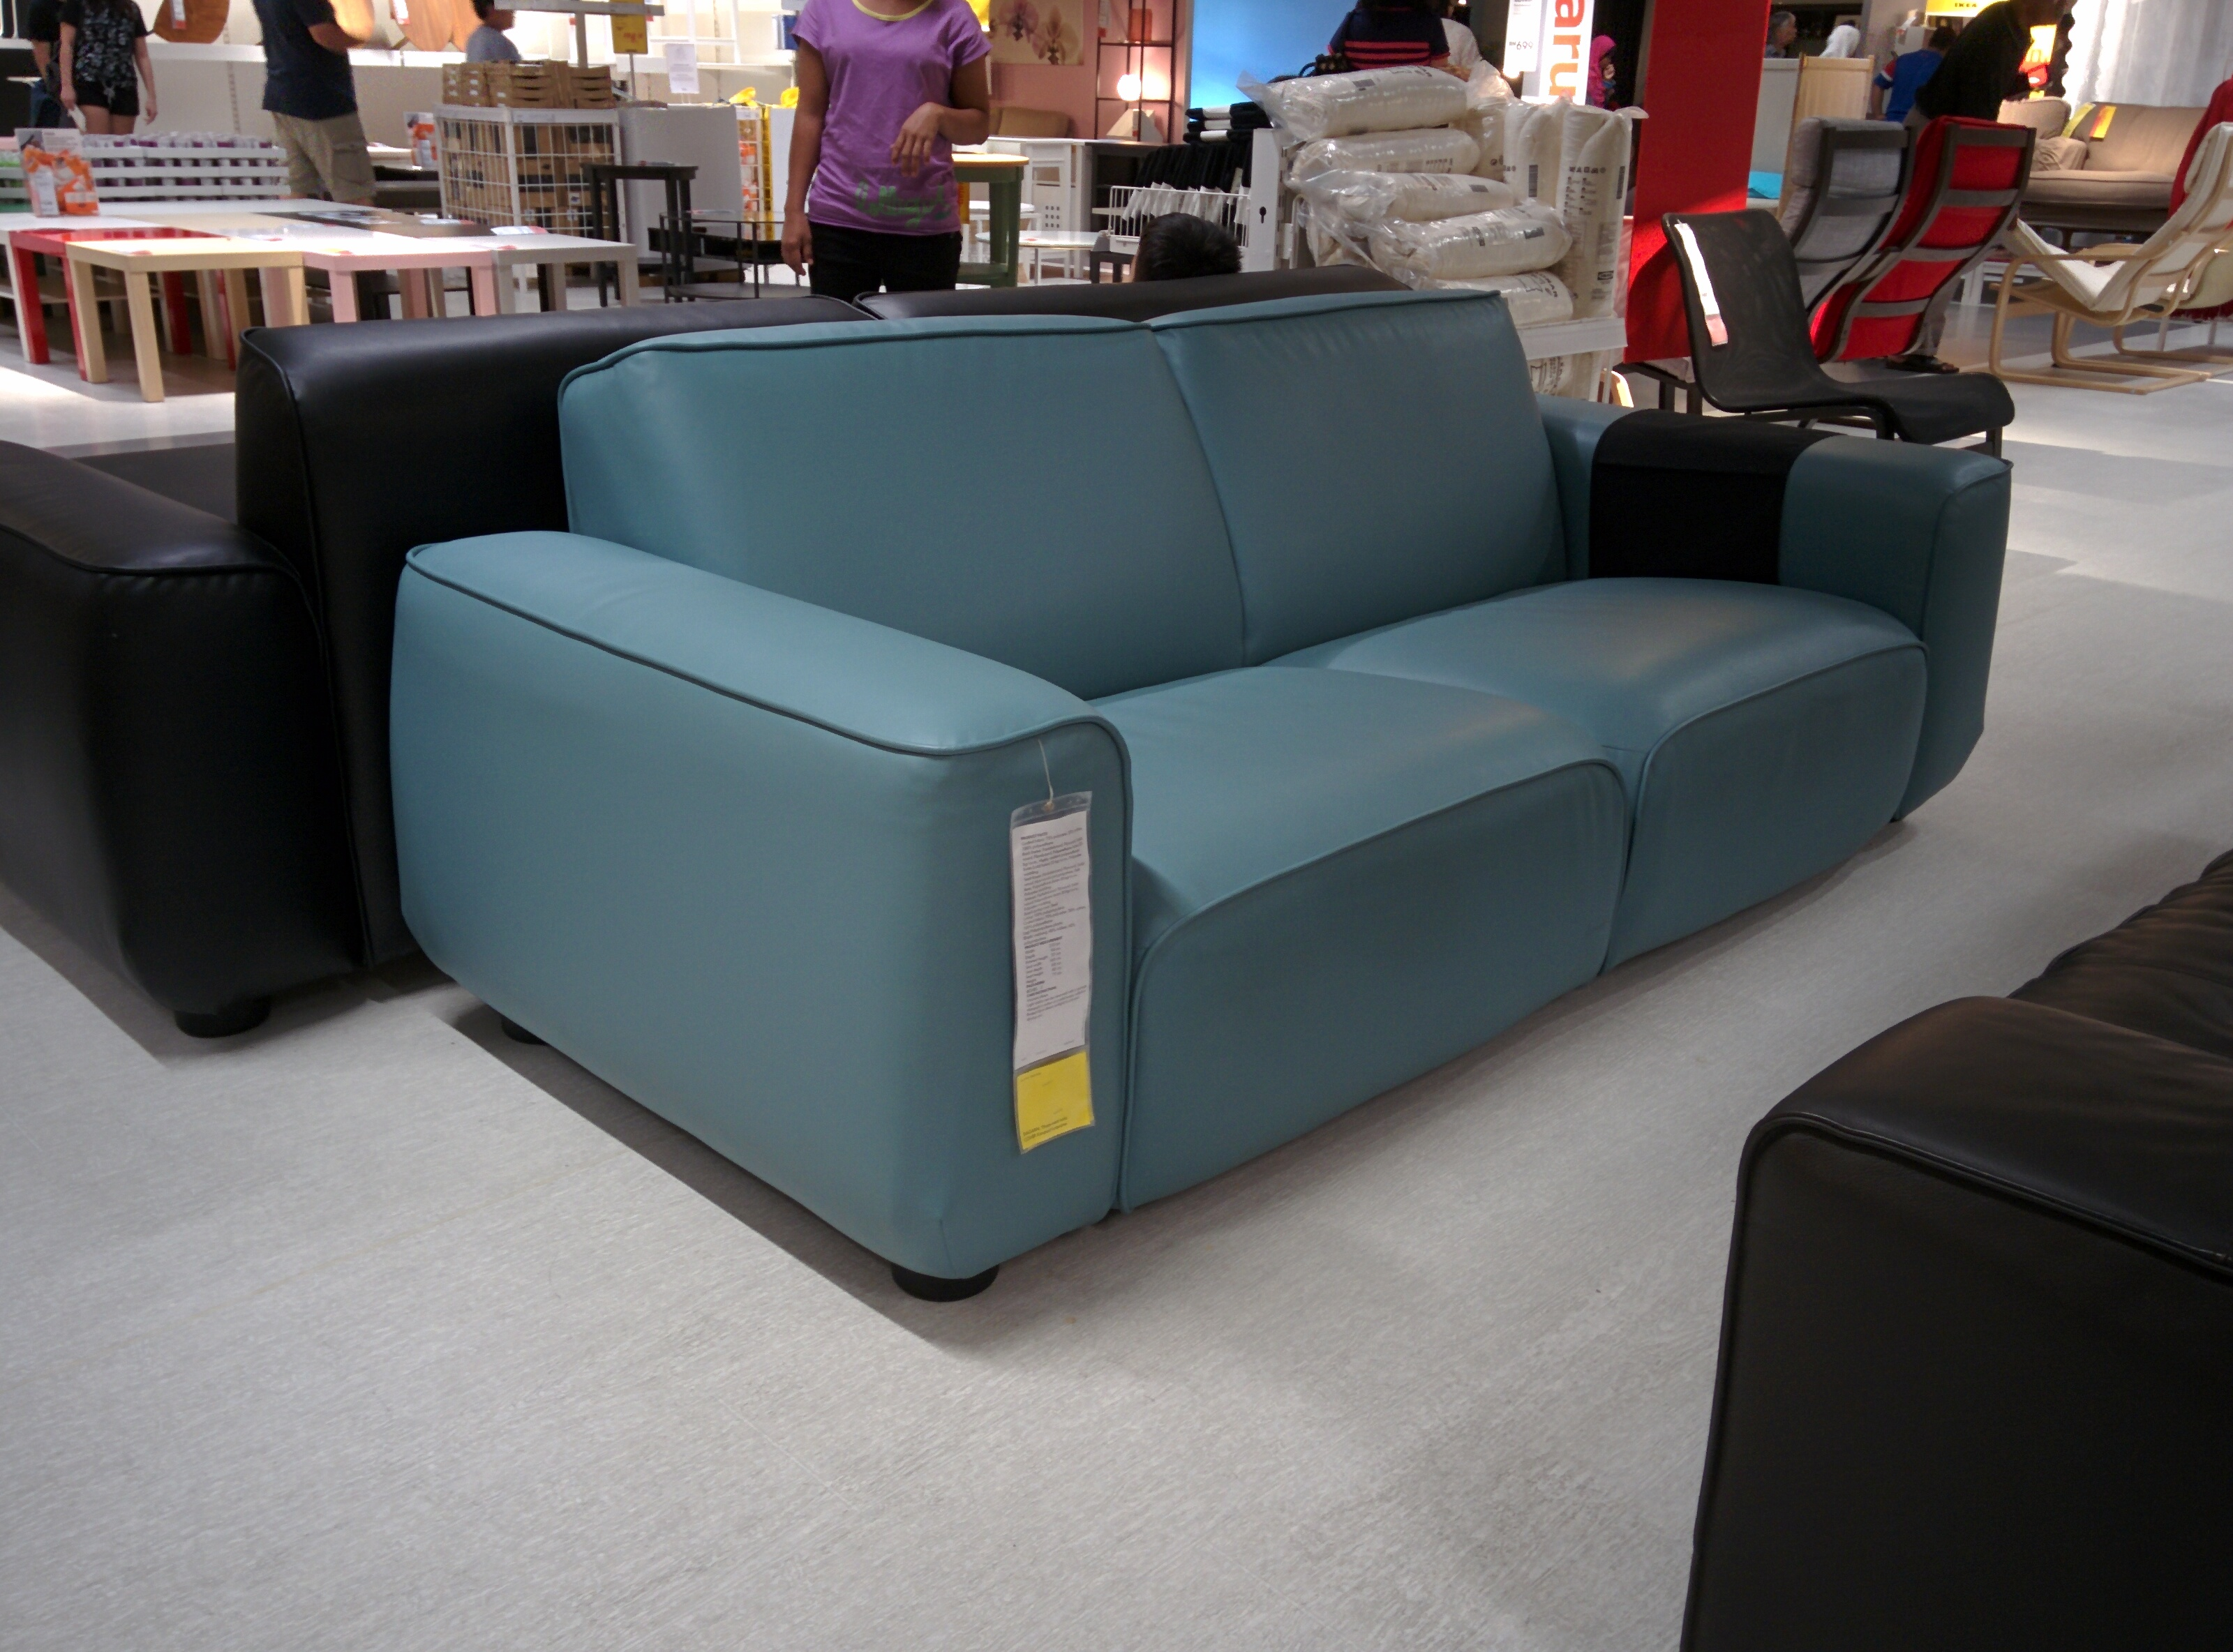 The Dagarn IKEA Sofa Review